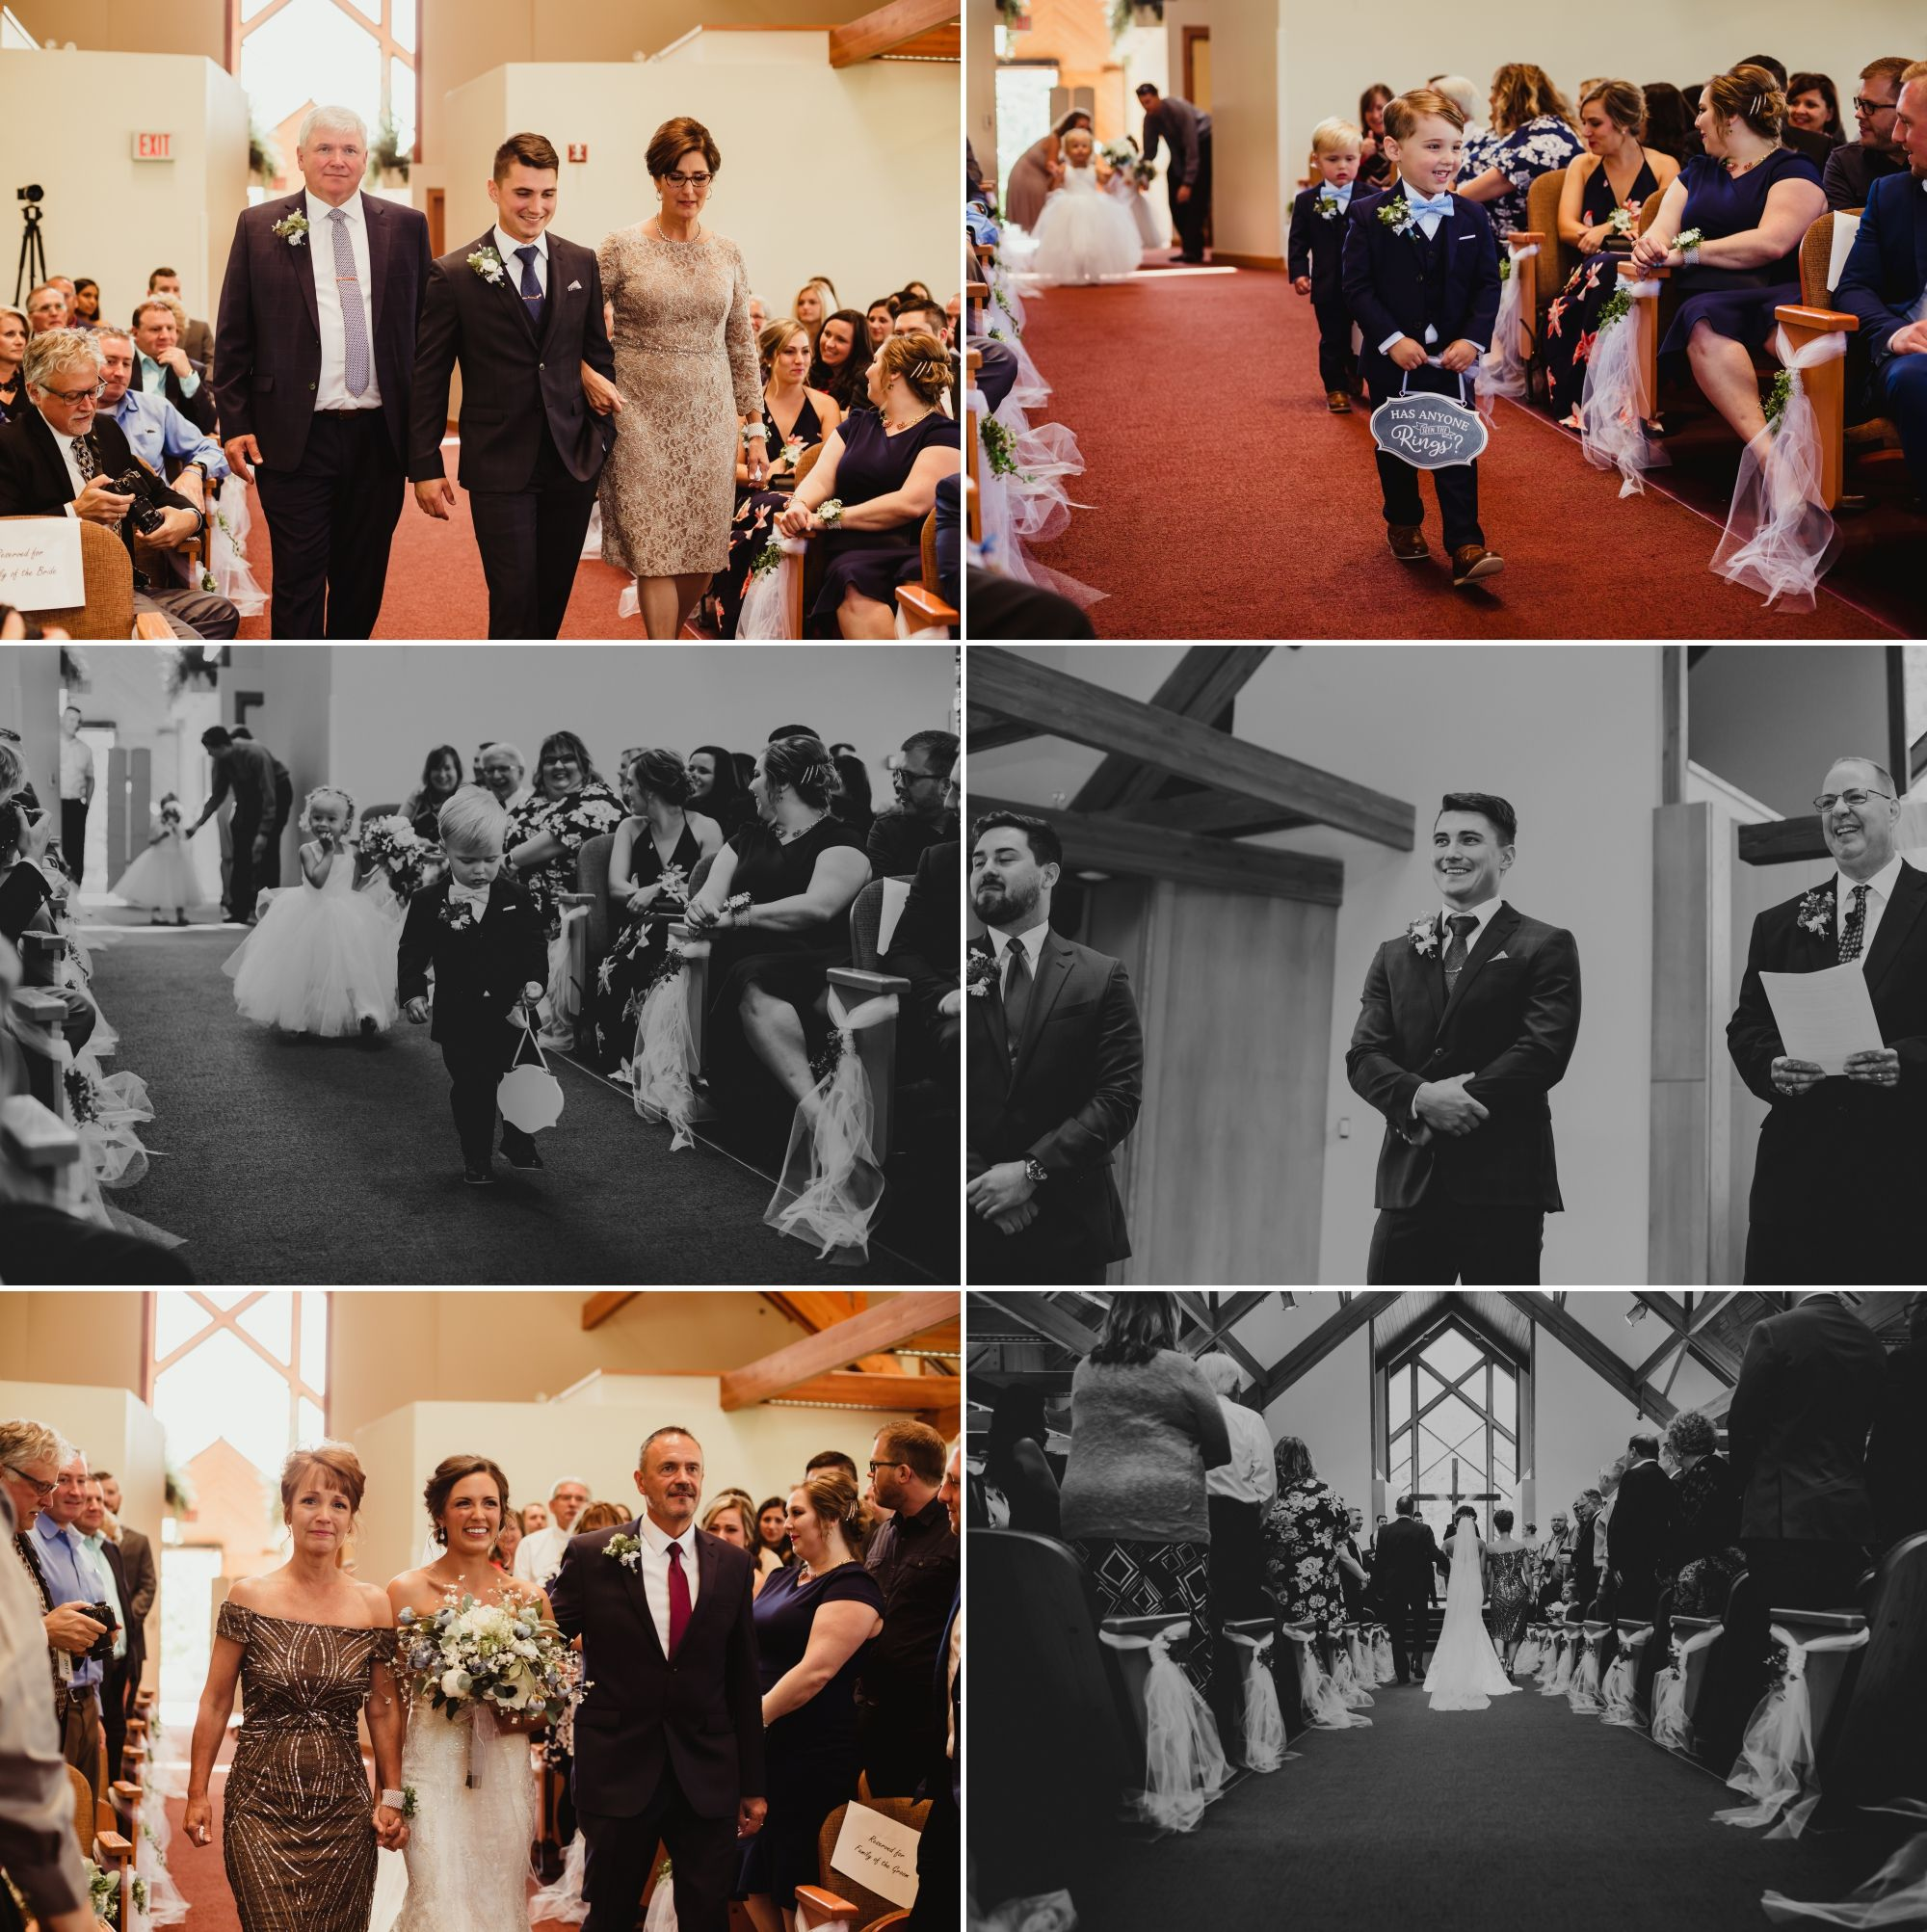 Collage of ring bearers, flower girl, bride, and her parents all walking down the aisle.